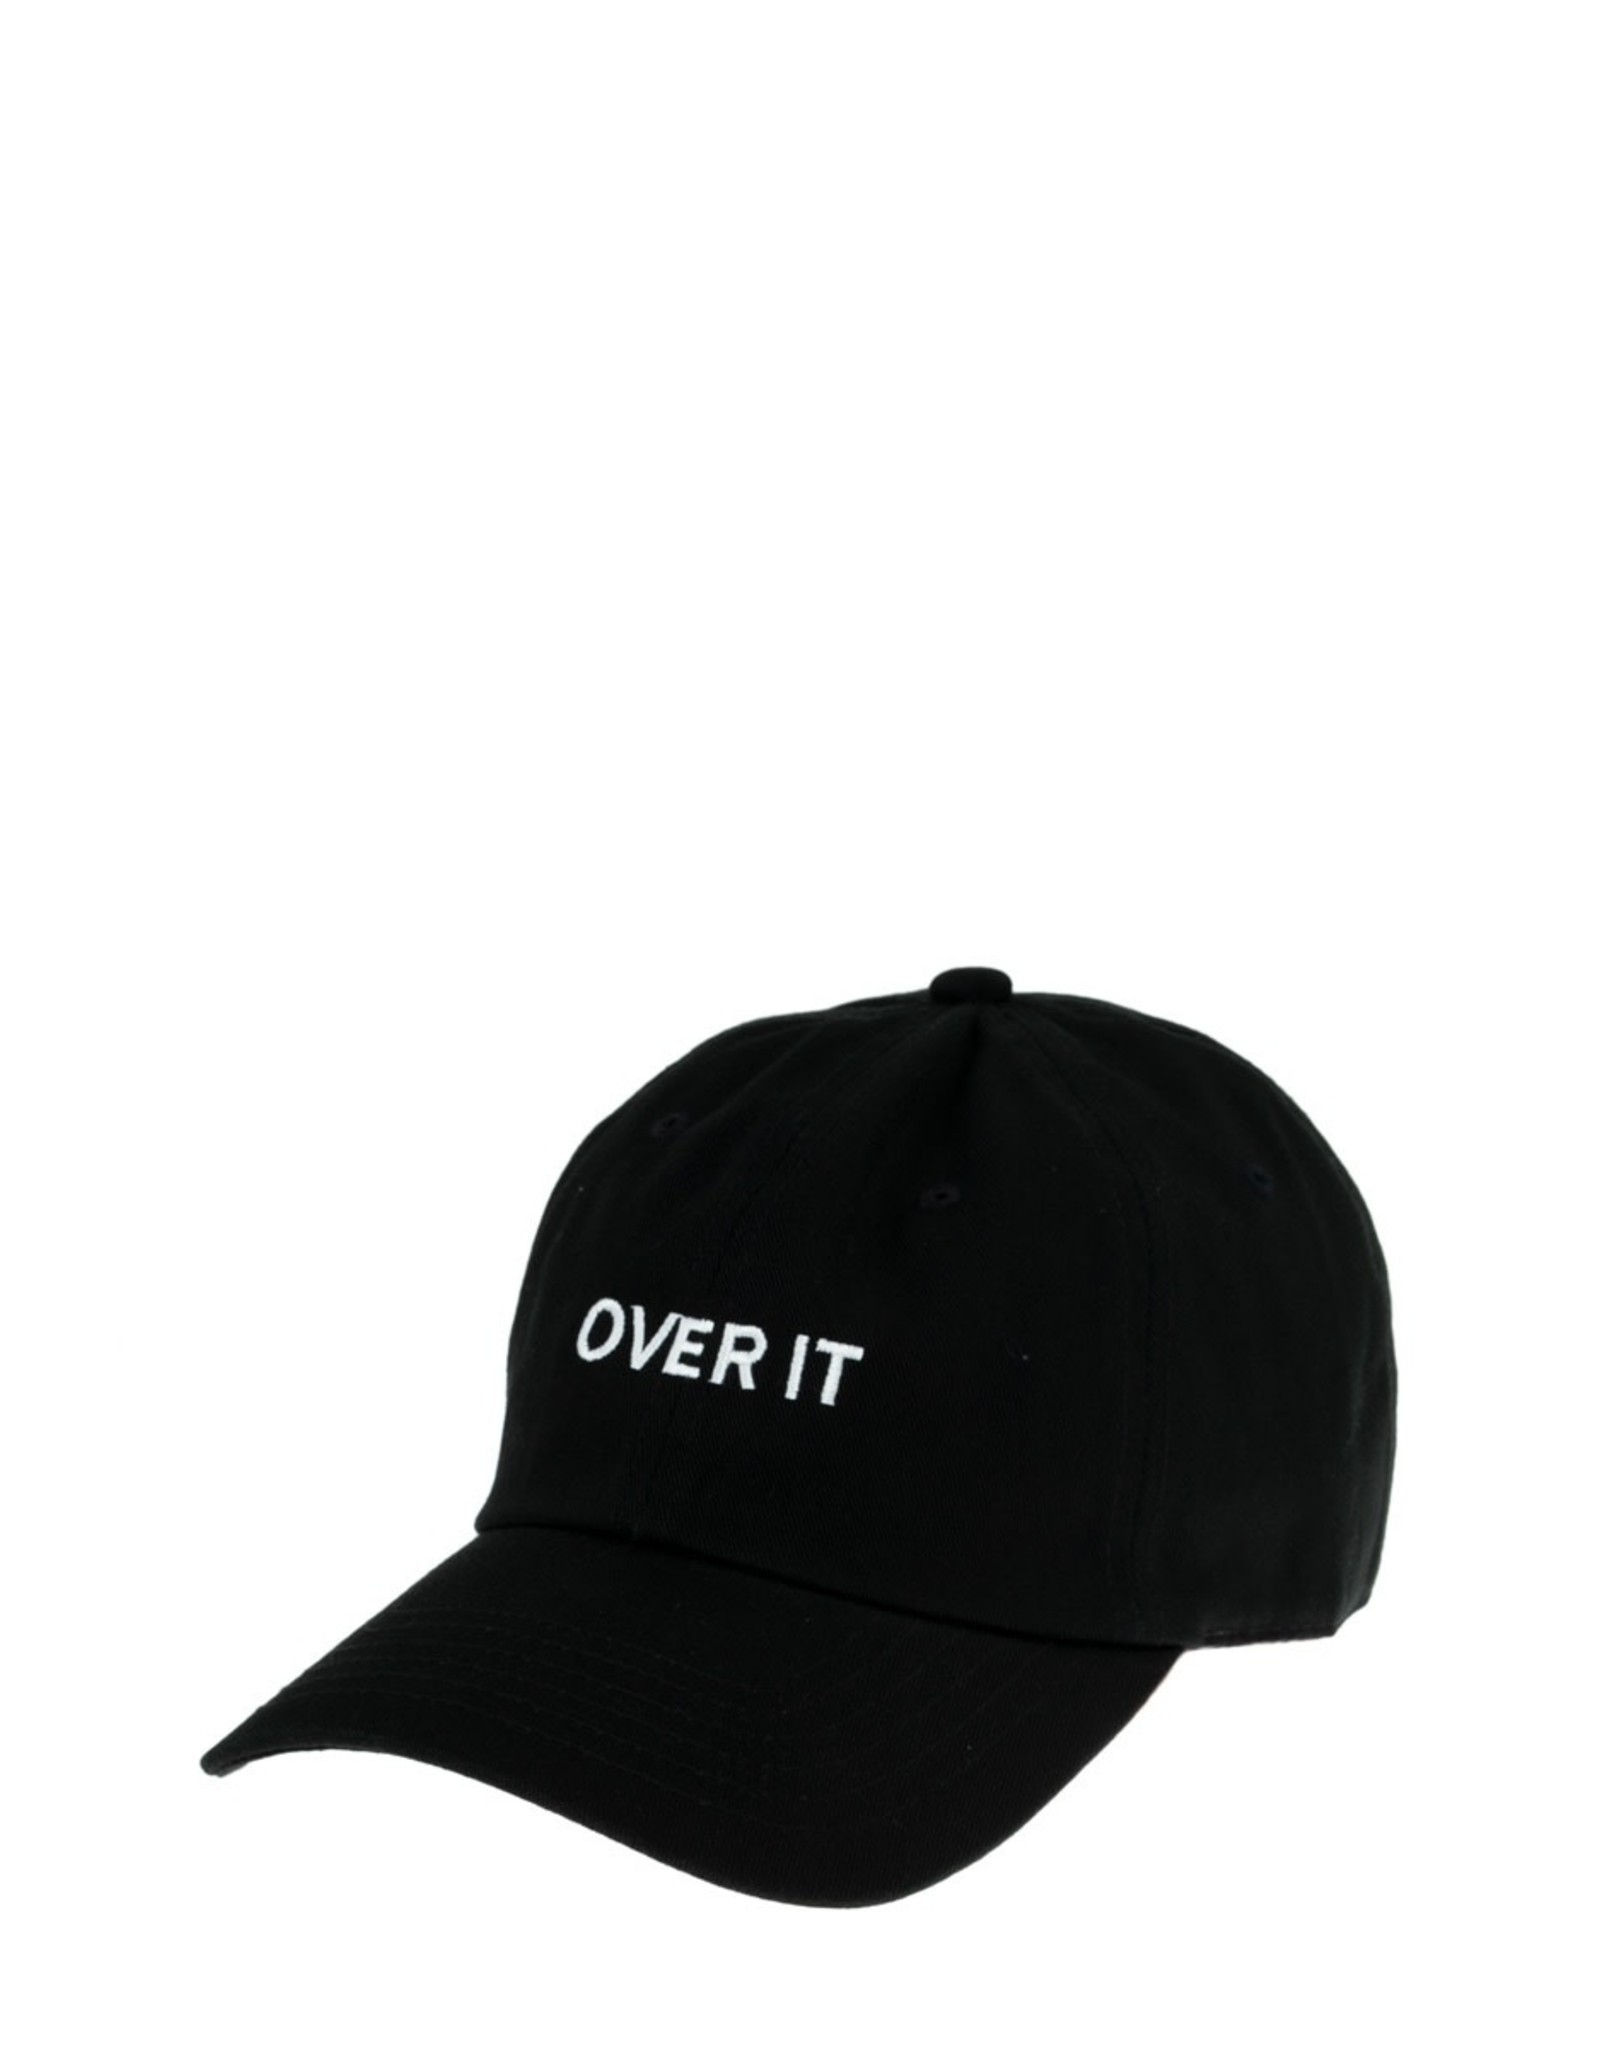 Over It Embroidery Cotton Cap